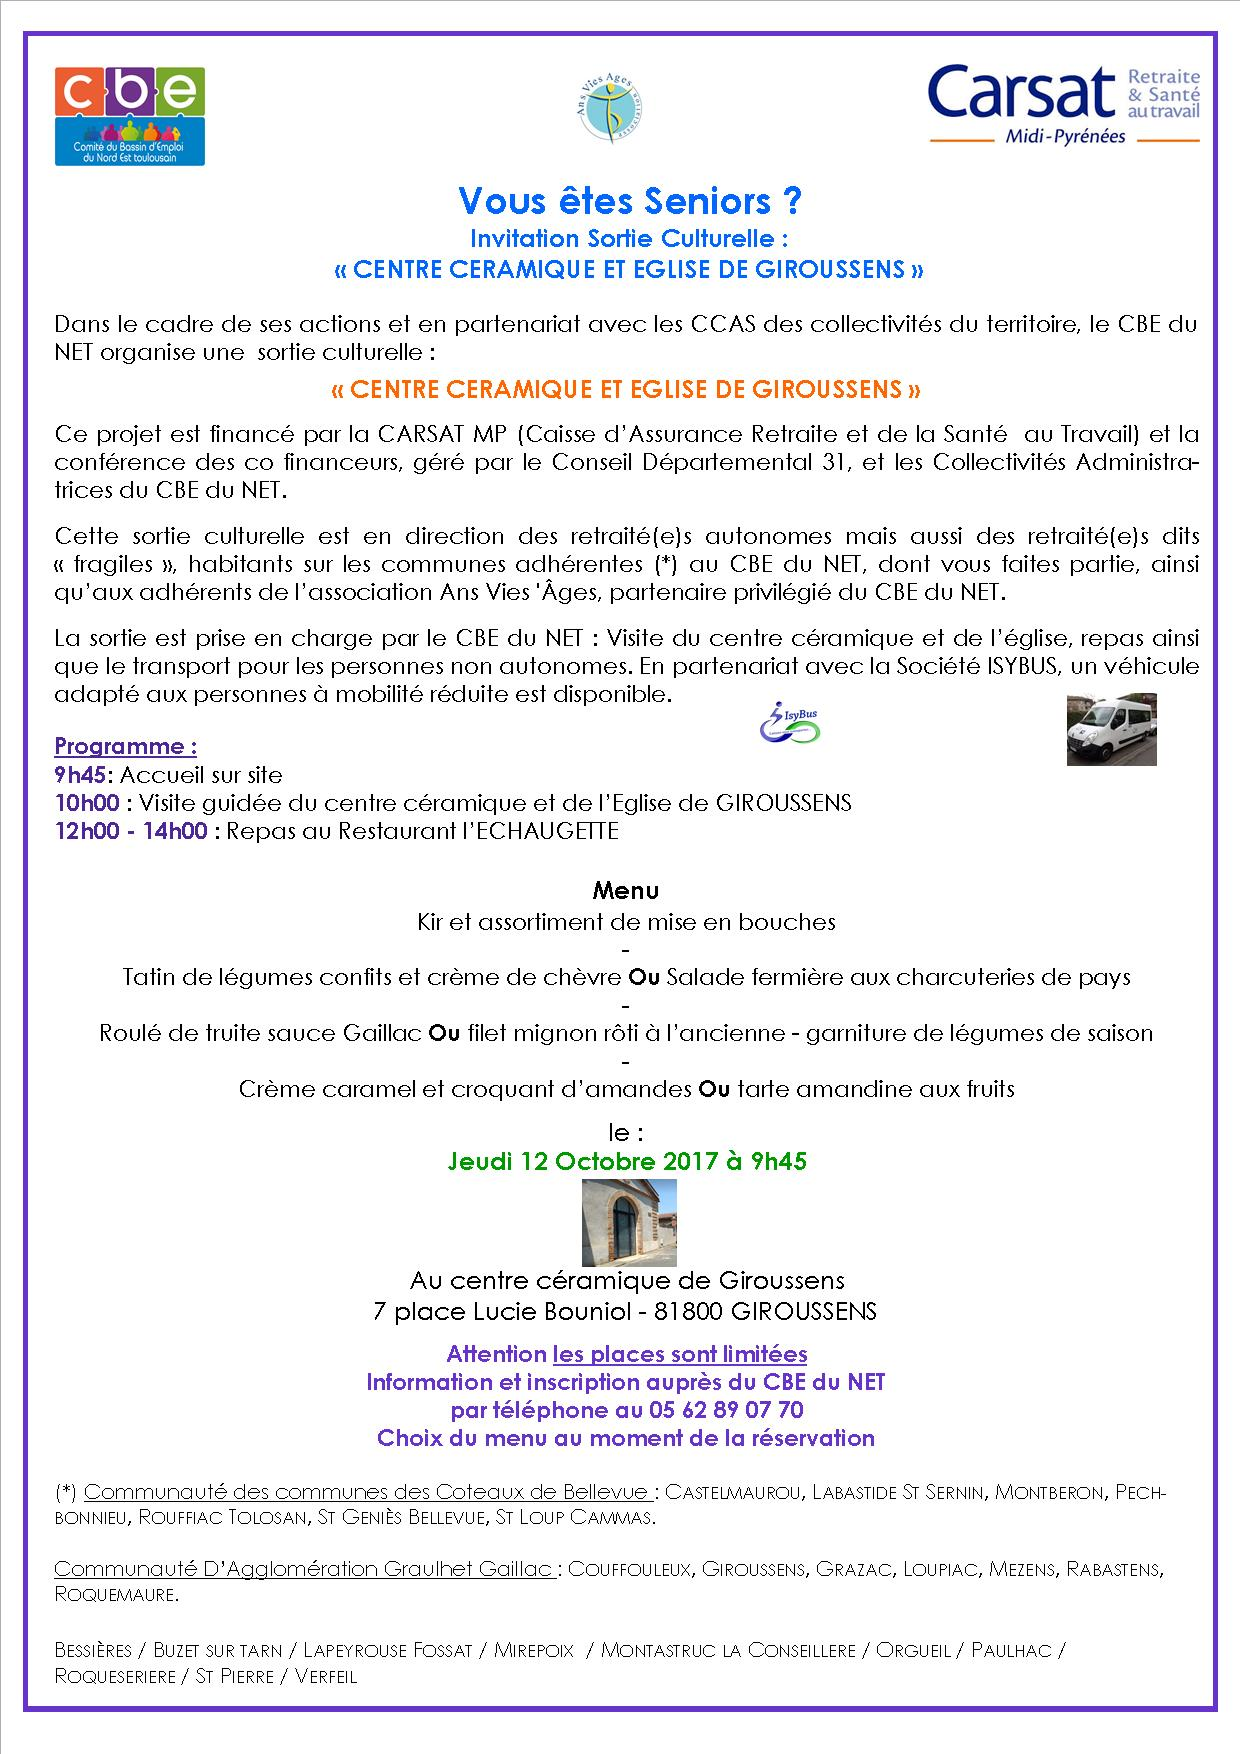 Invitation 12 Octobre 2017 JPEG